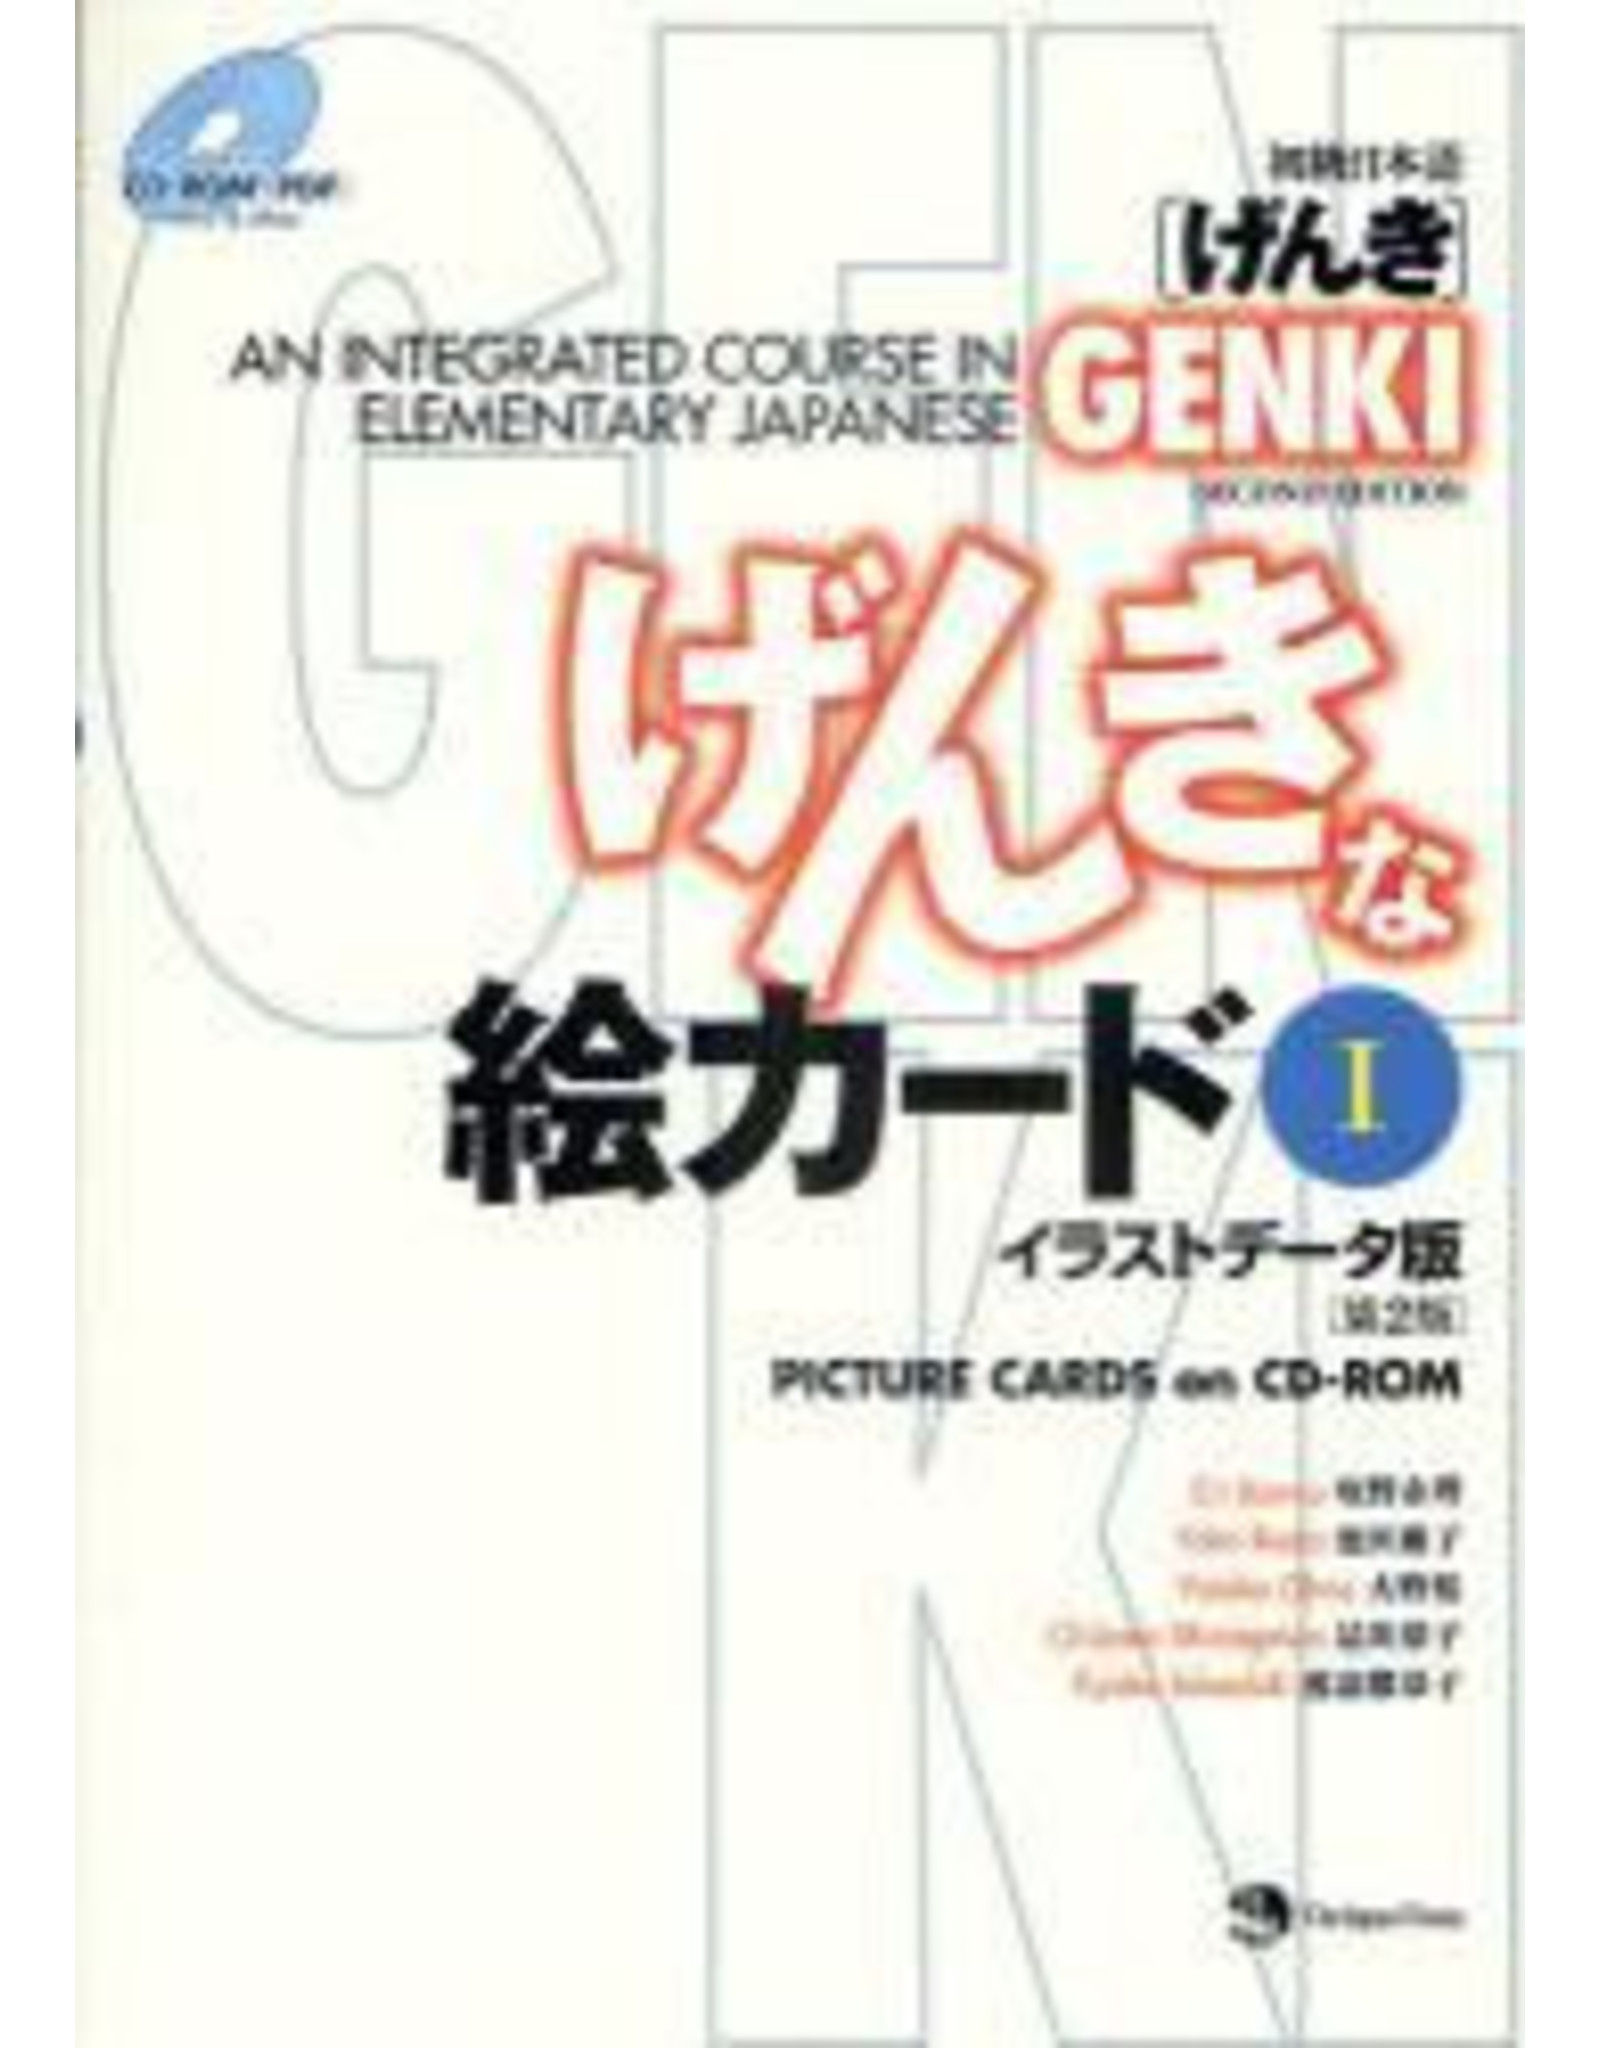 JAPAN TIMES GENKI NA E CARD (1) / CD-ROM - GENKI PICTURE CARDS ON CD-ROM (1)